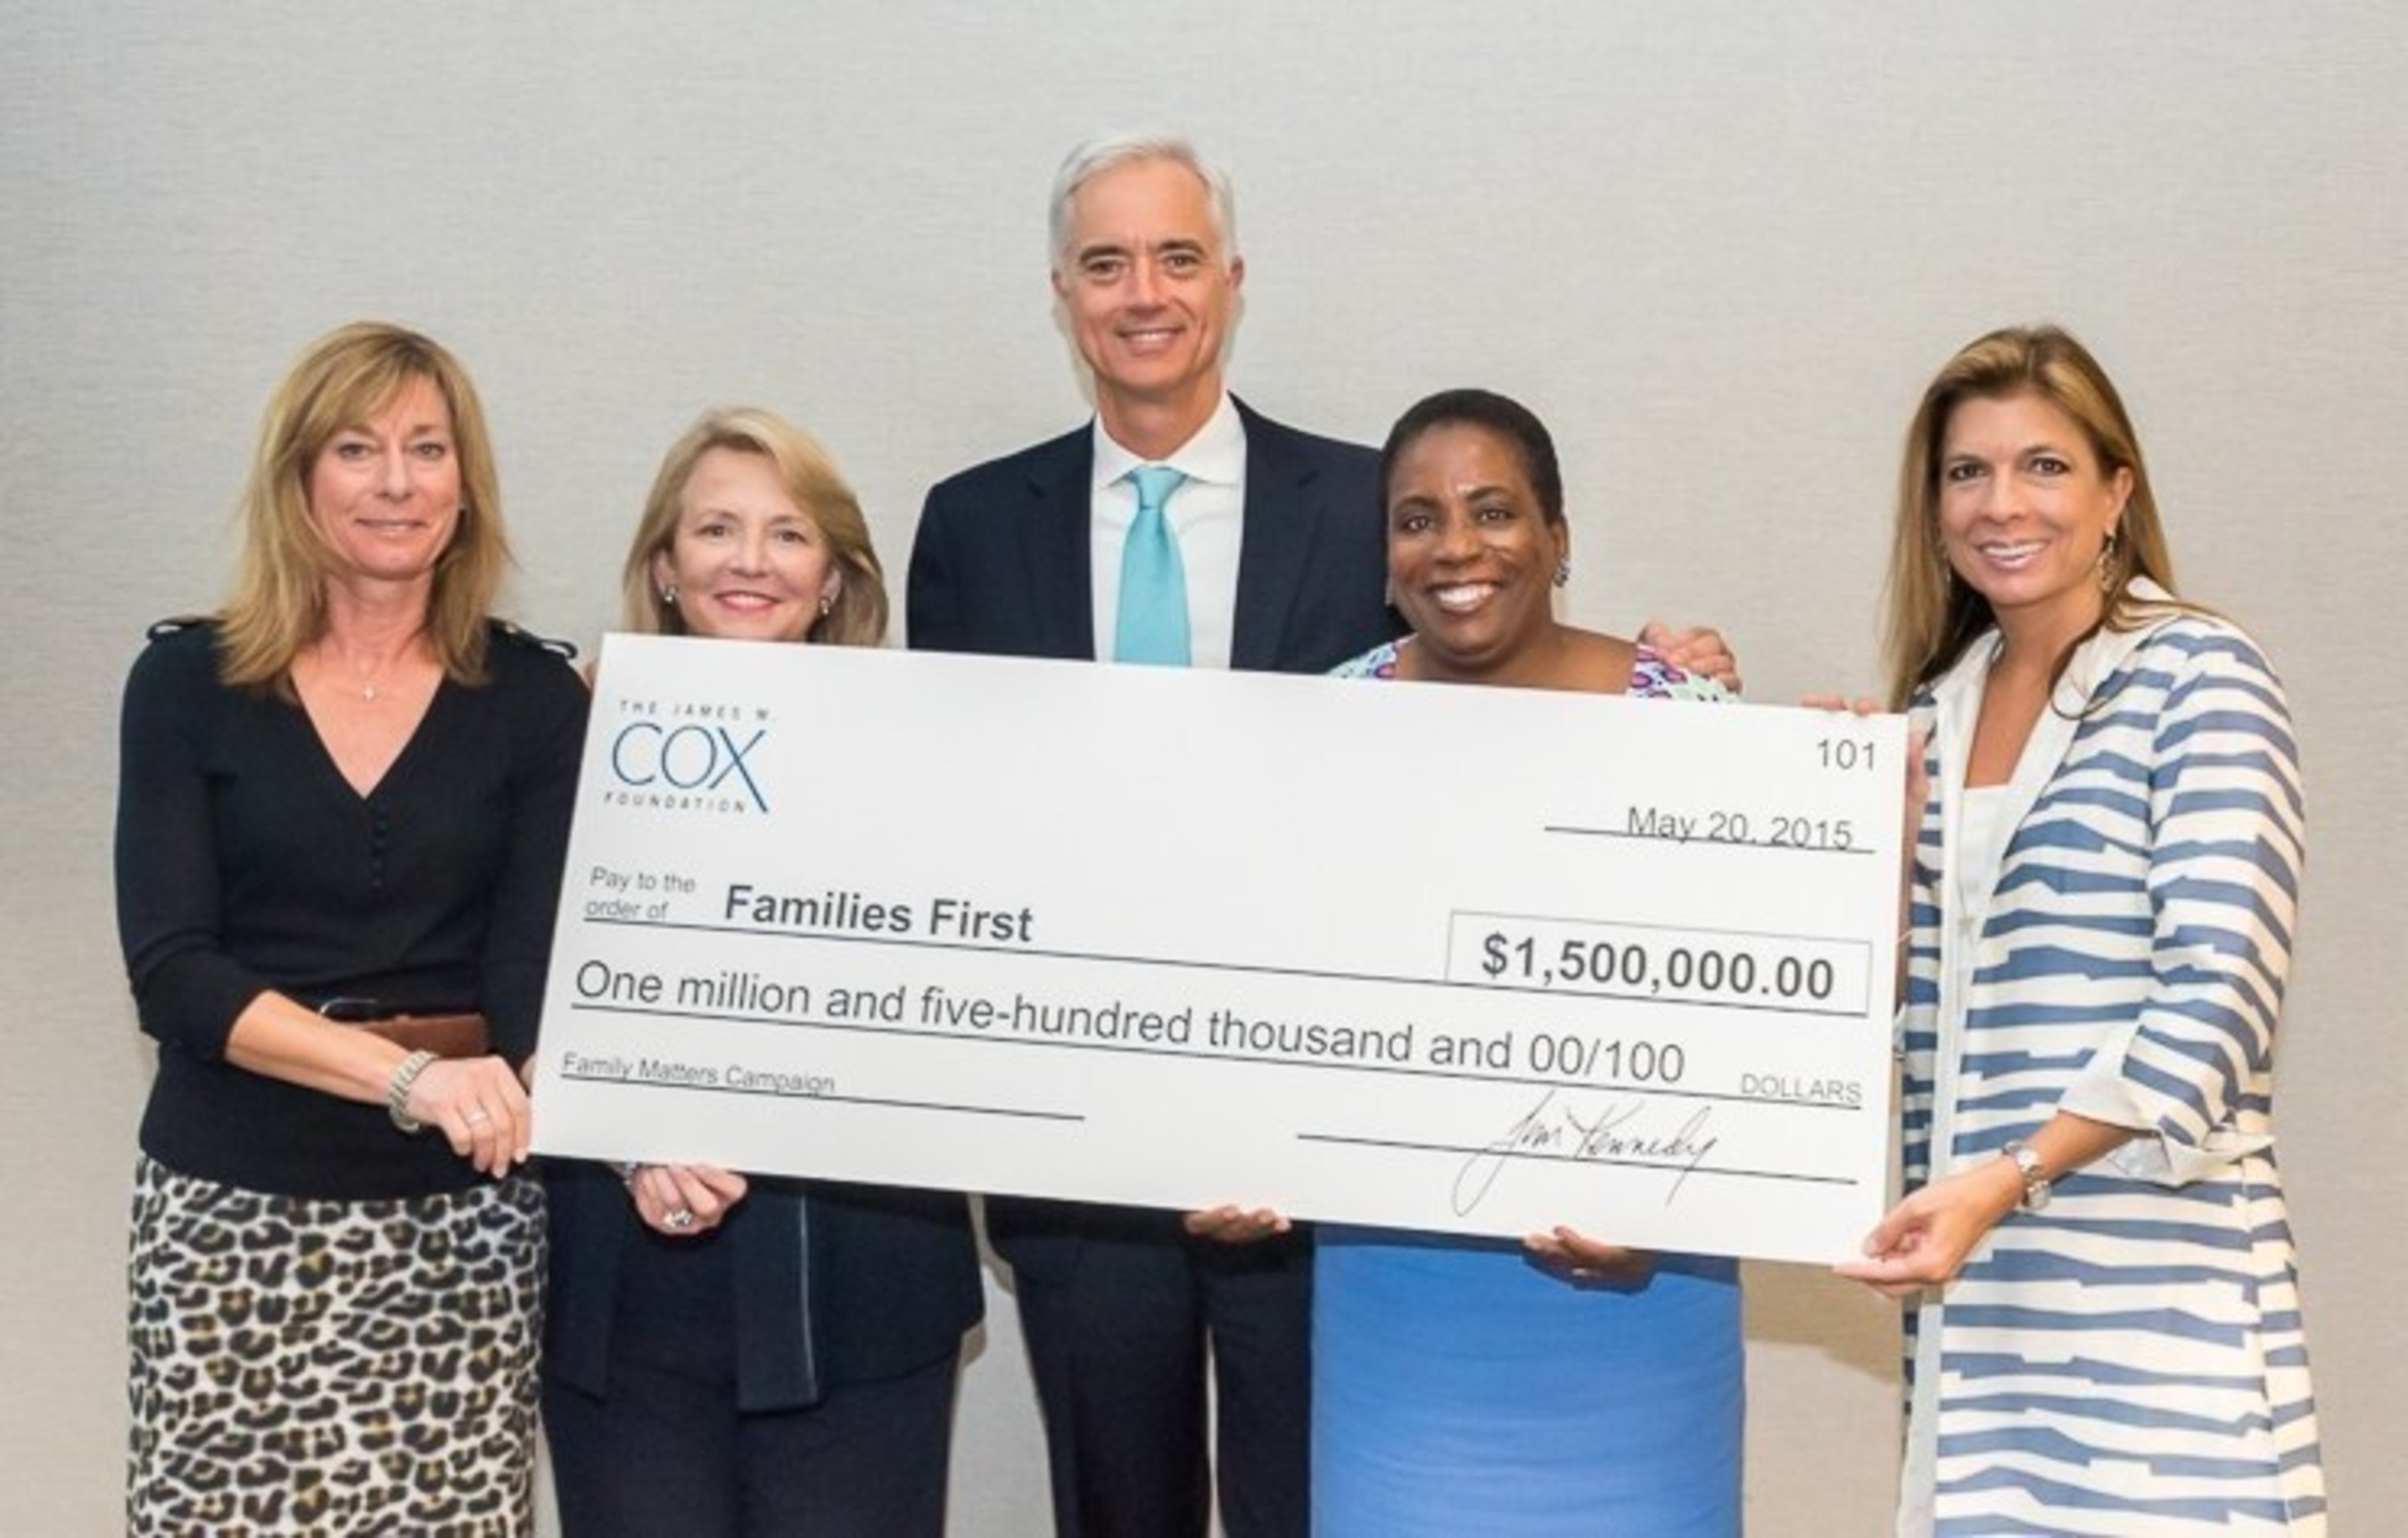 L to R: Marybeth Leamer (Cox Enterprises EVP and Families First Board Member), Nancy Rigby (Cox Foundations VP), Jim Mills (Families First Board Chair), Kim Anderson (Families First CEO), Julie Salisbury (Families First Chair-Elect)